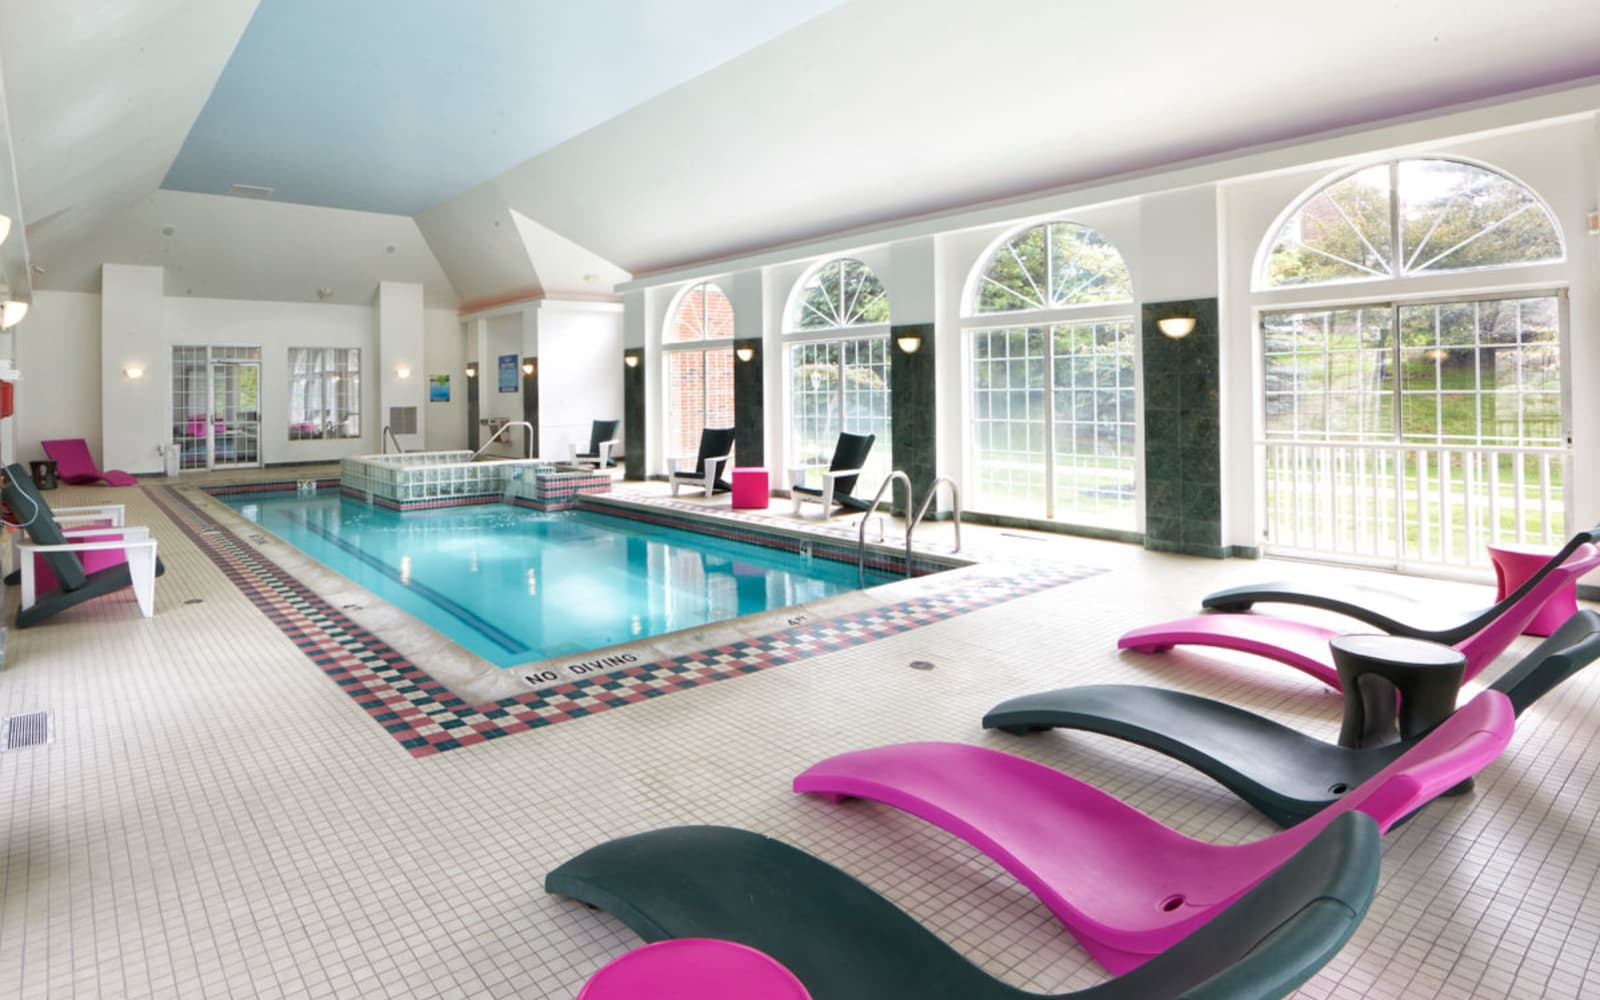 Indoor pool and poolside lounging at Citation Club in Farmington Hills, Michigan